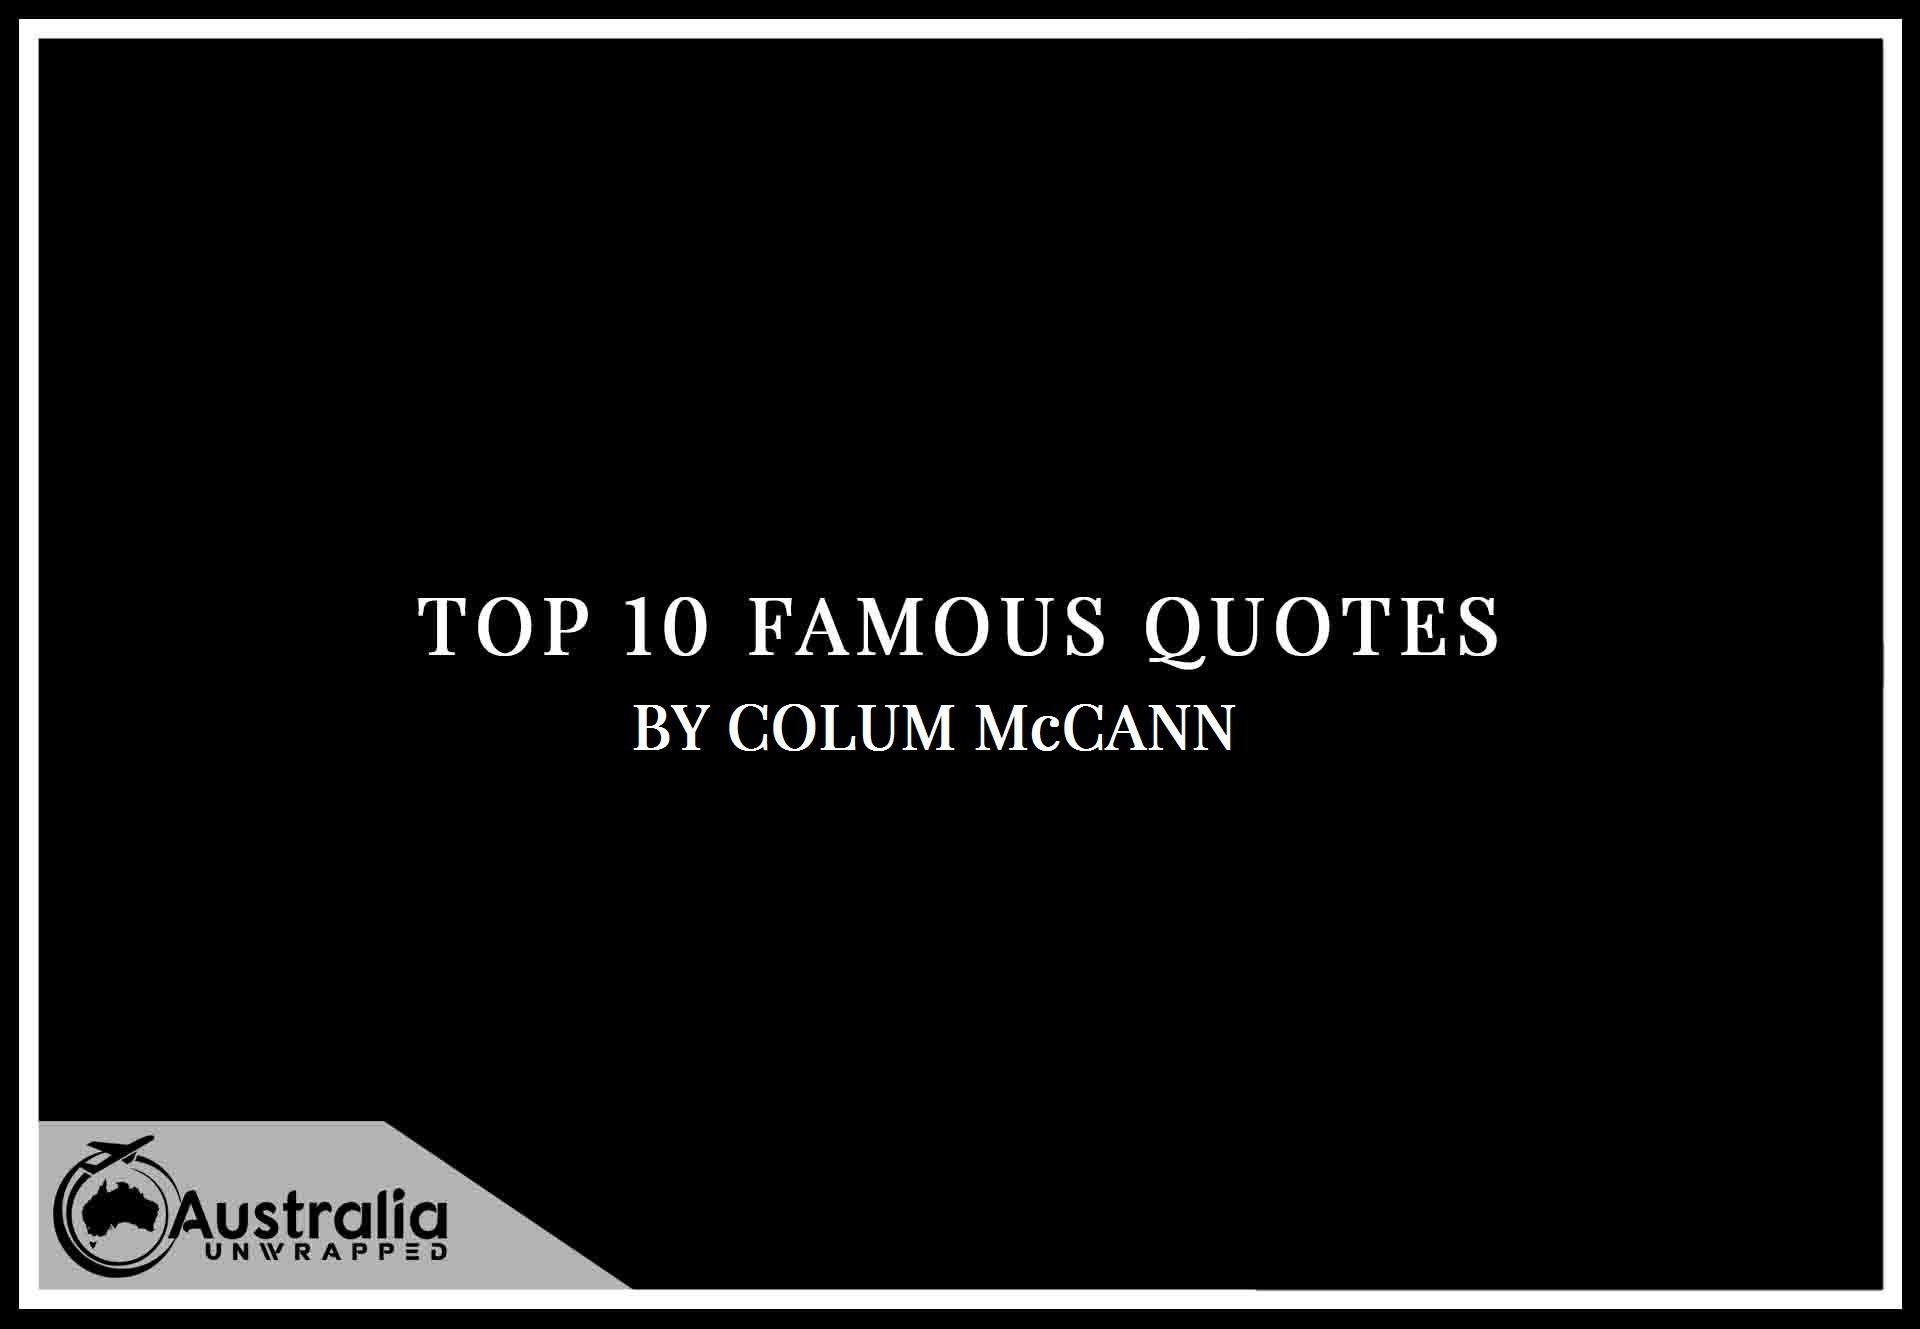 Colum McCann's Top 10 Popular and Famous Quotes